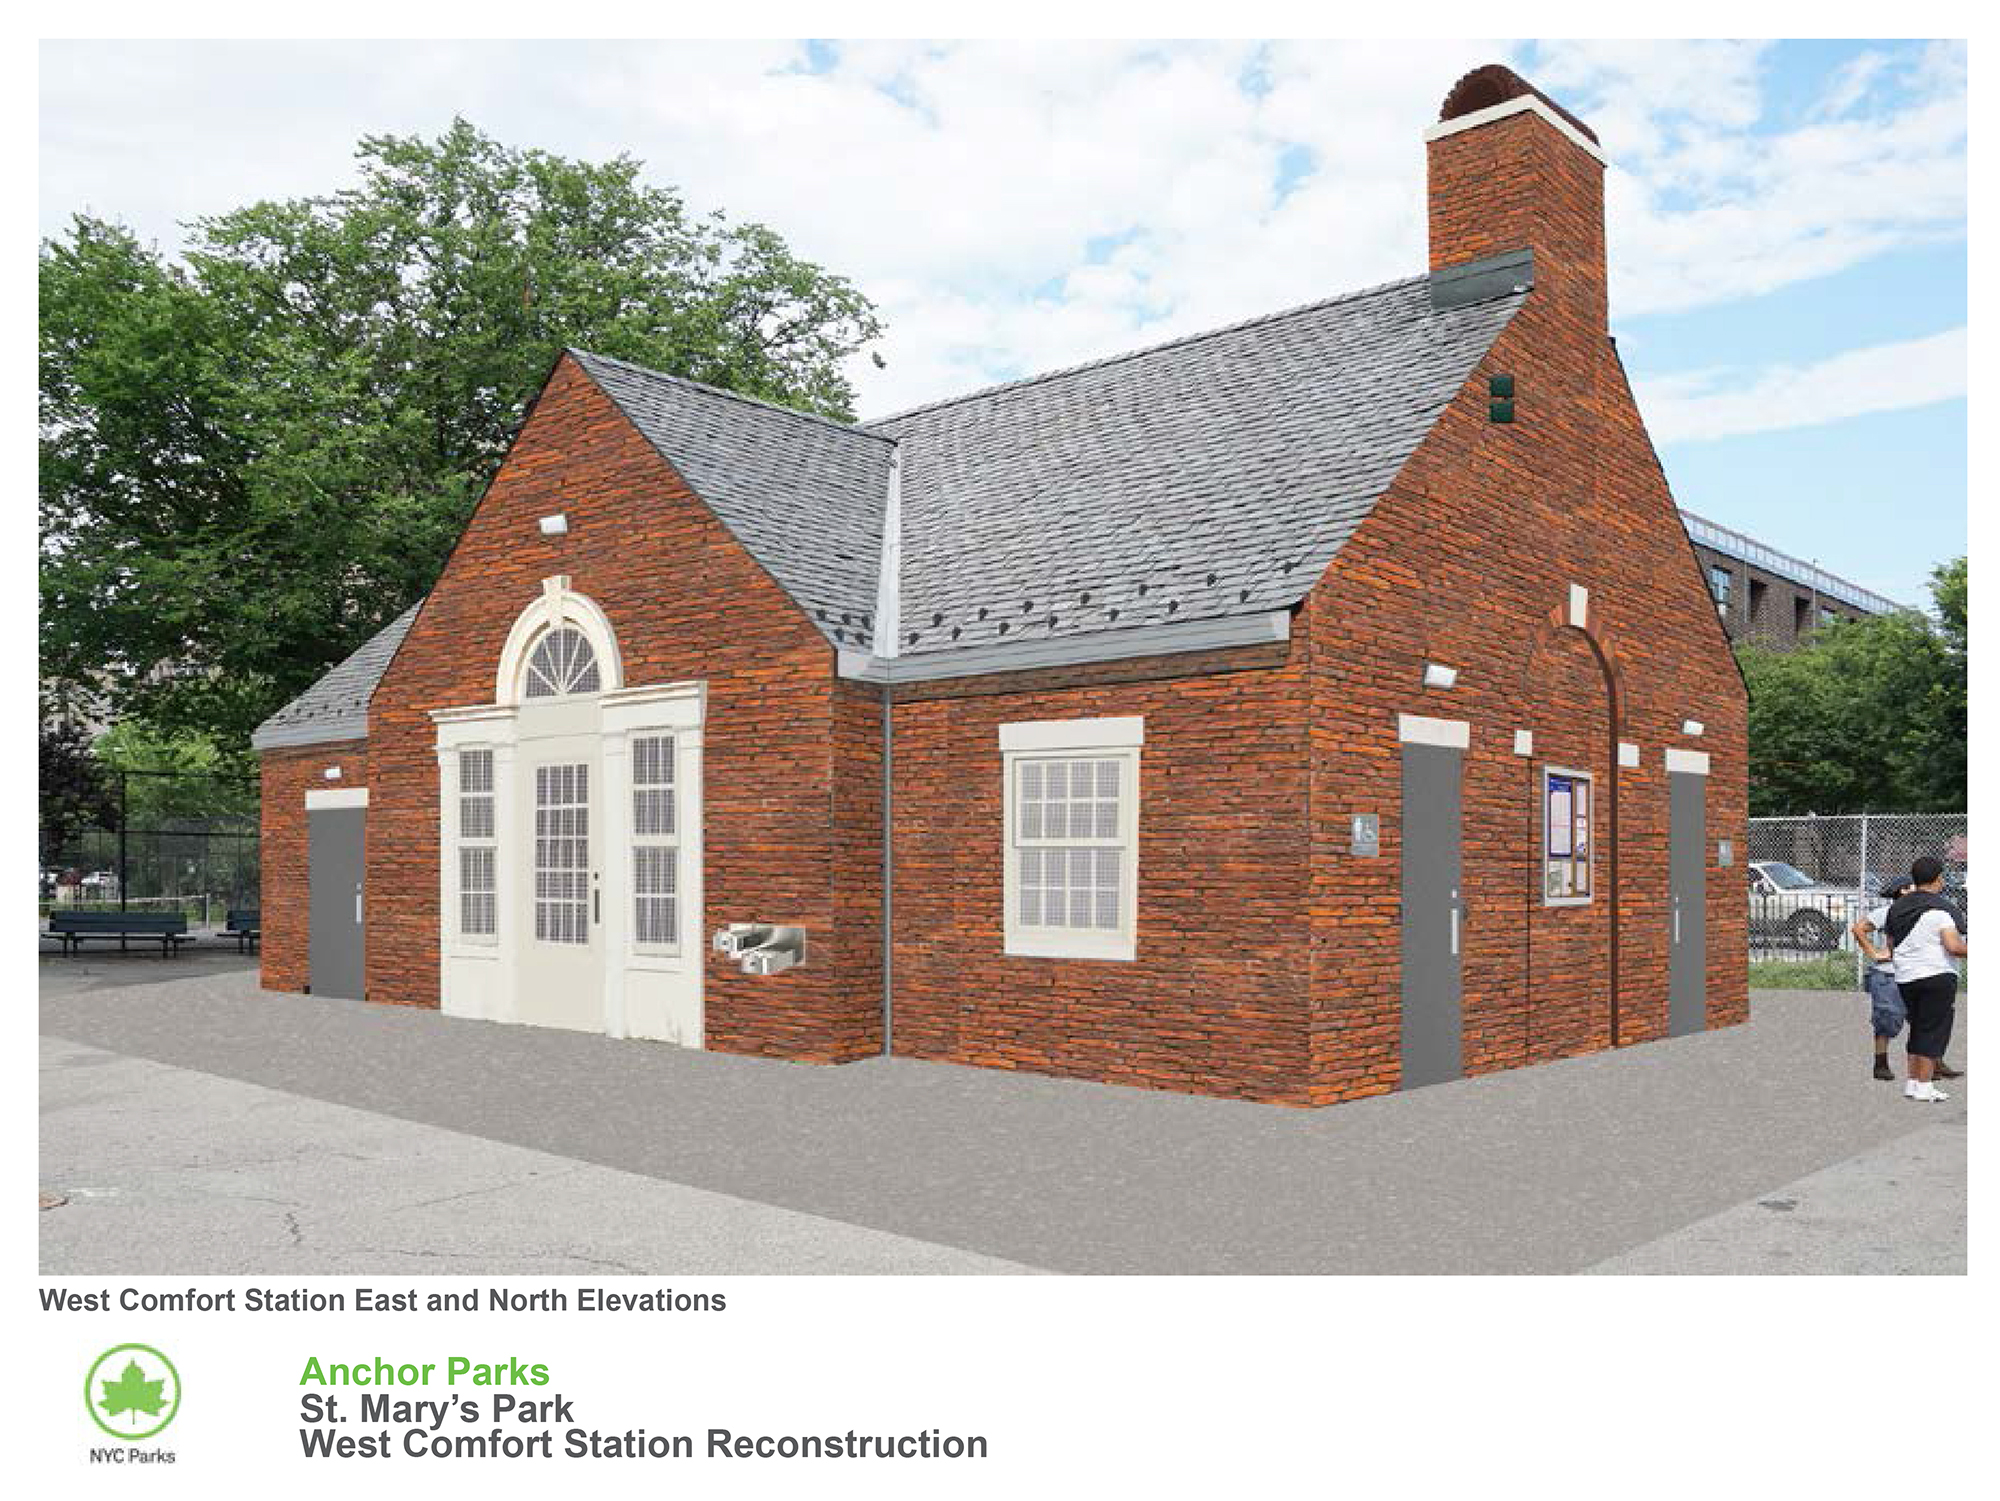 Design of St. Mary's Park Playground West Comfort Station Reconstruction